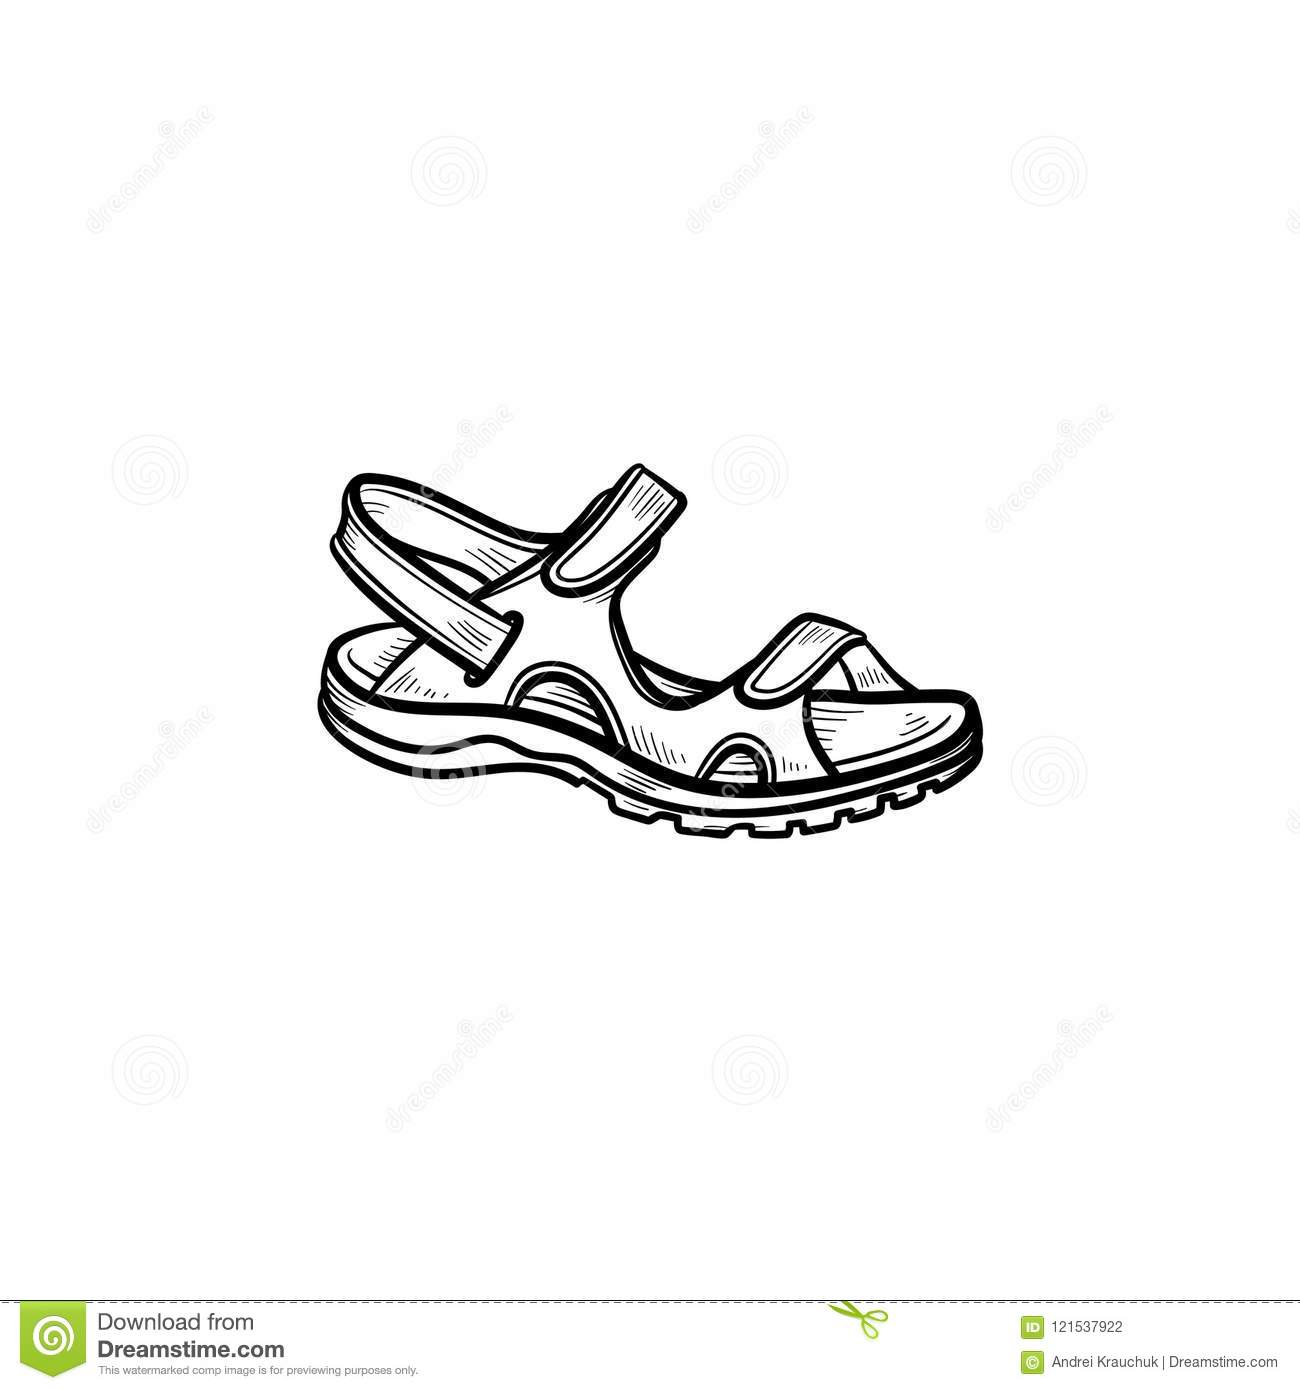 2464896810383 Realistic Child Sandal Drawn Outline Doodle Icon. Stock Vector ...